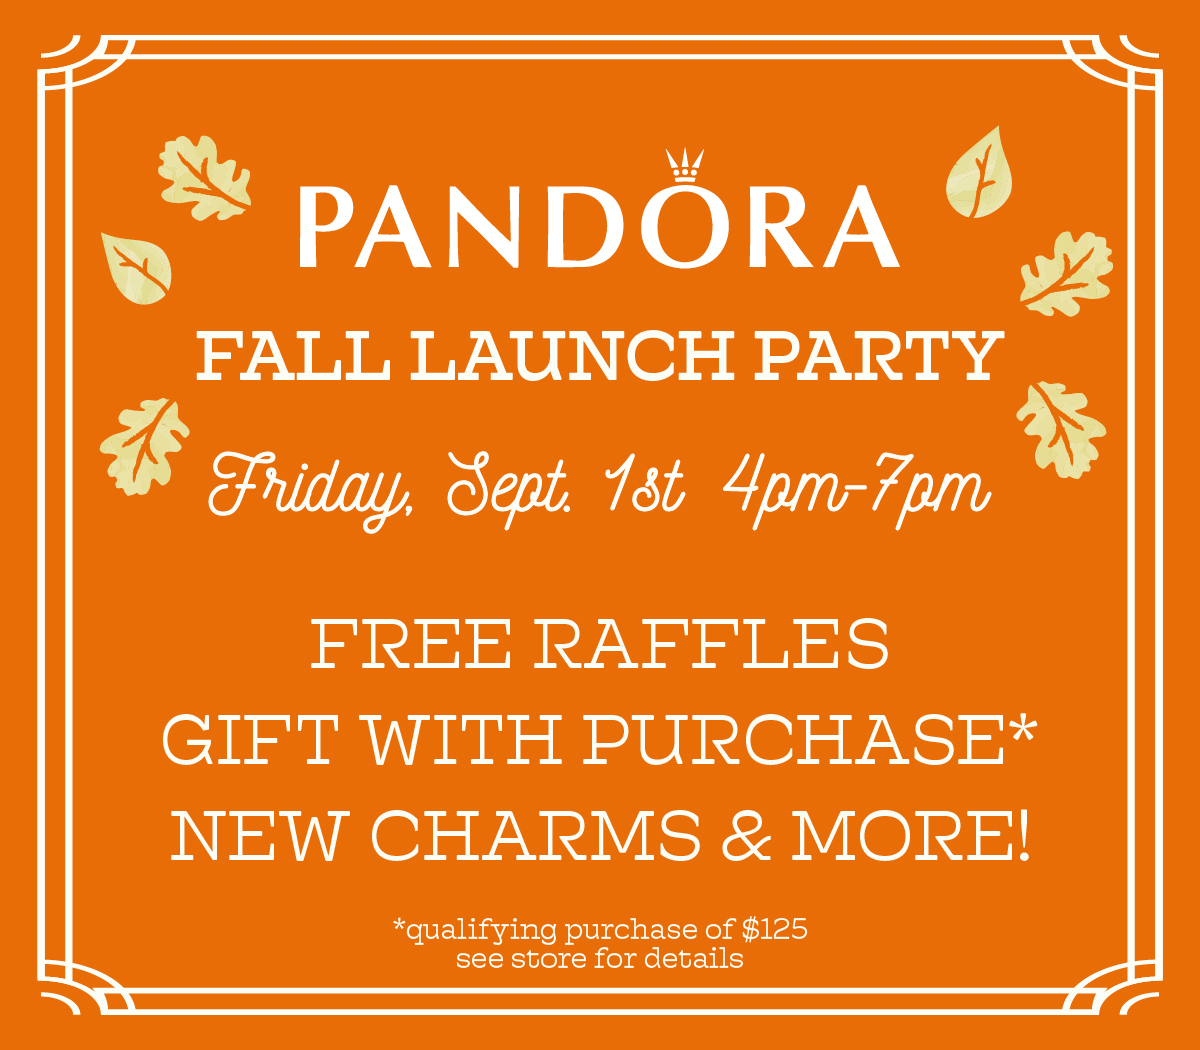 Pandora Fall Launch Party 01